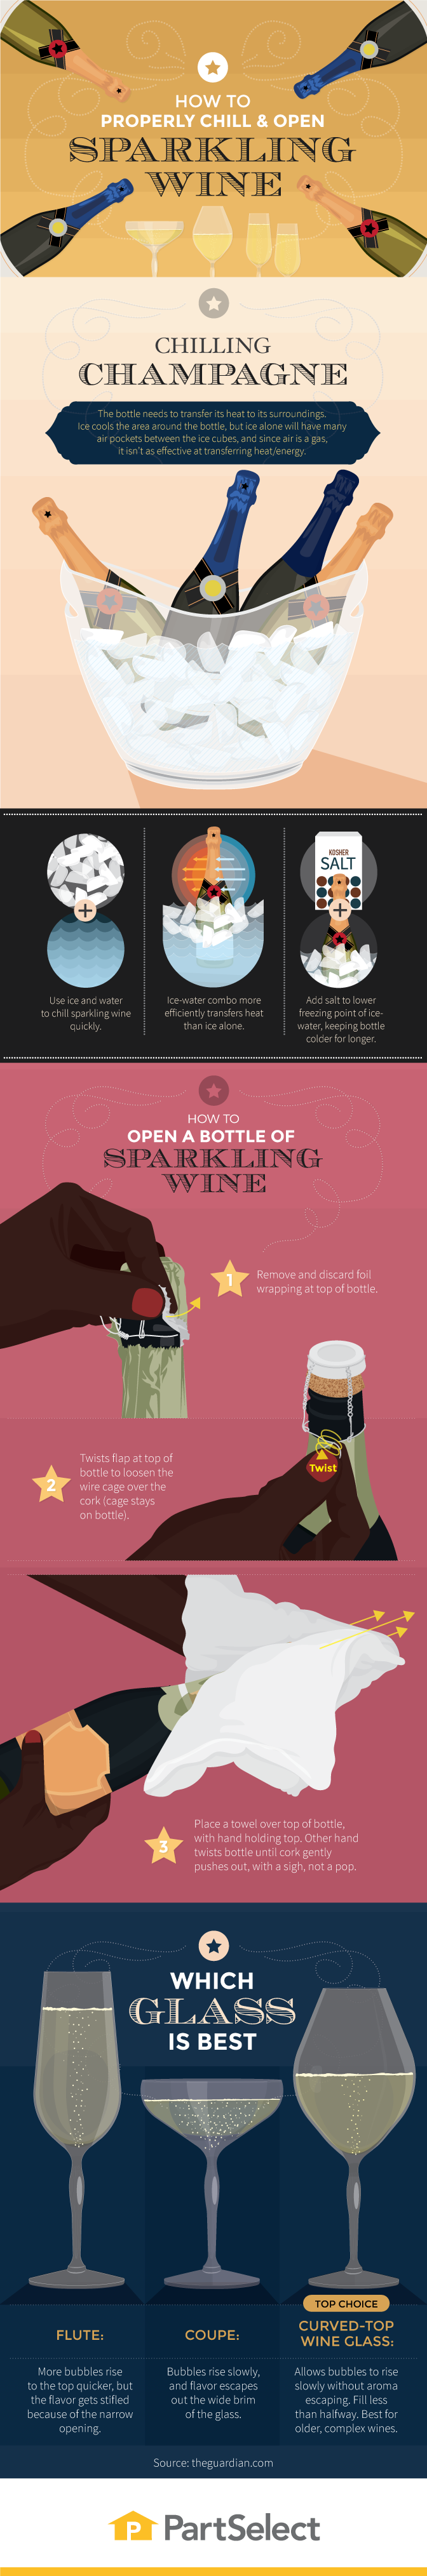 How to Properly Chill and Open Sparkling Wine